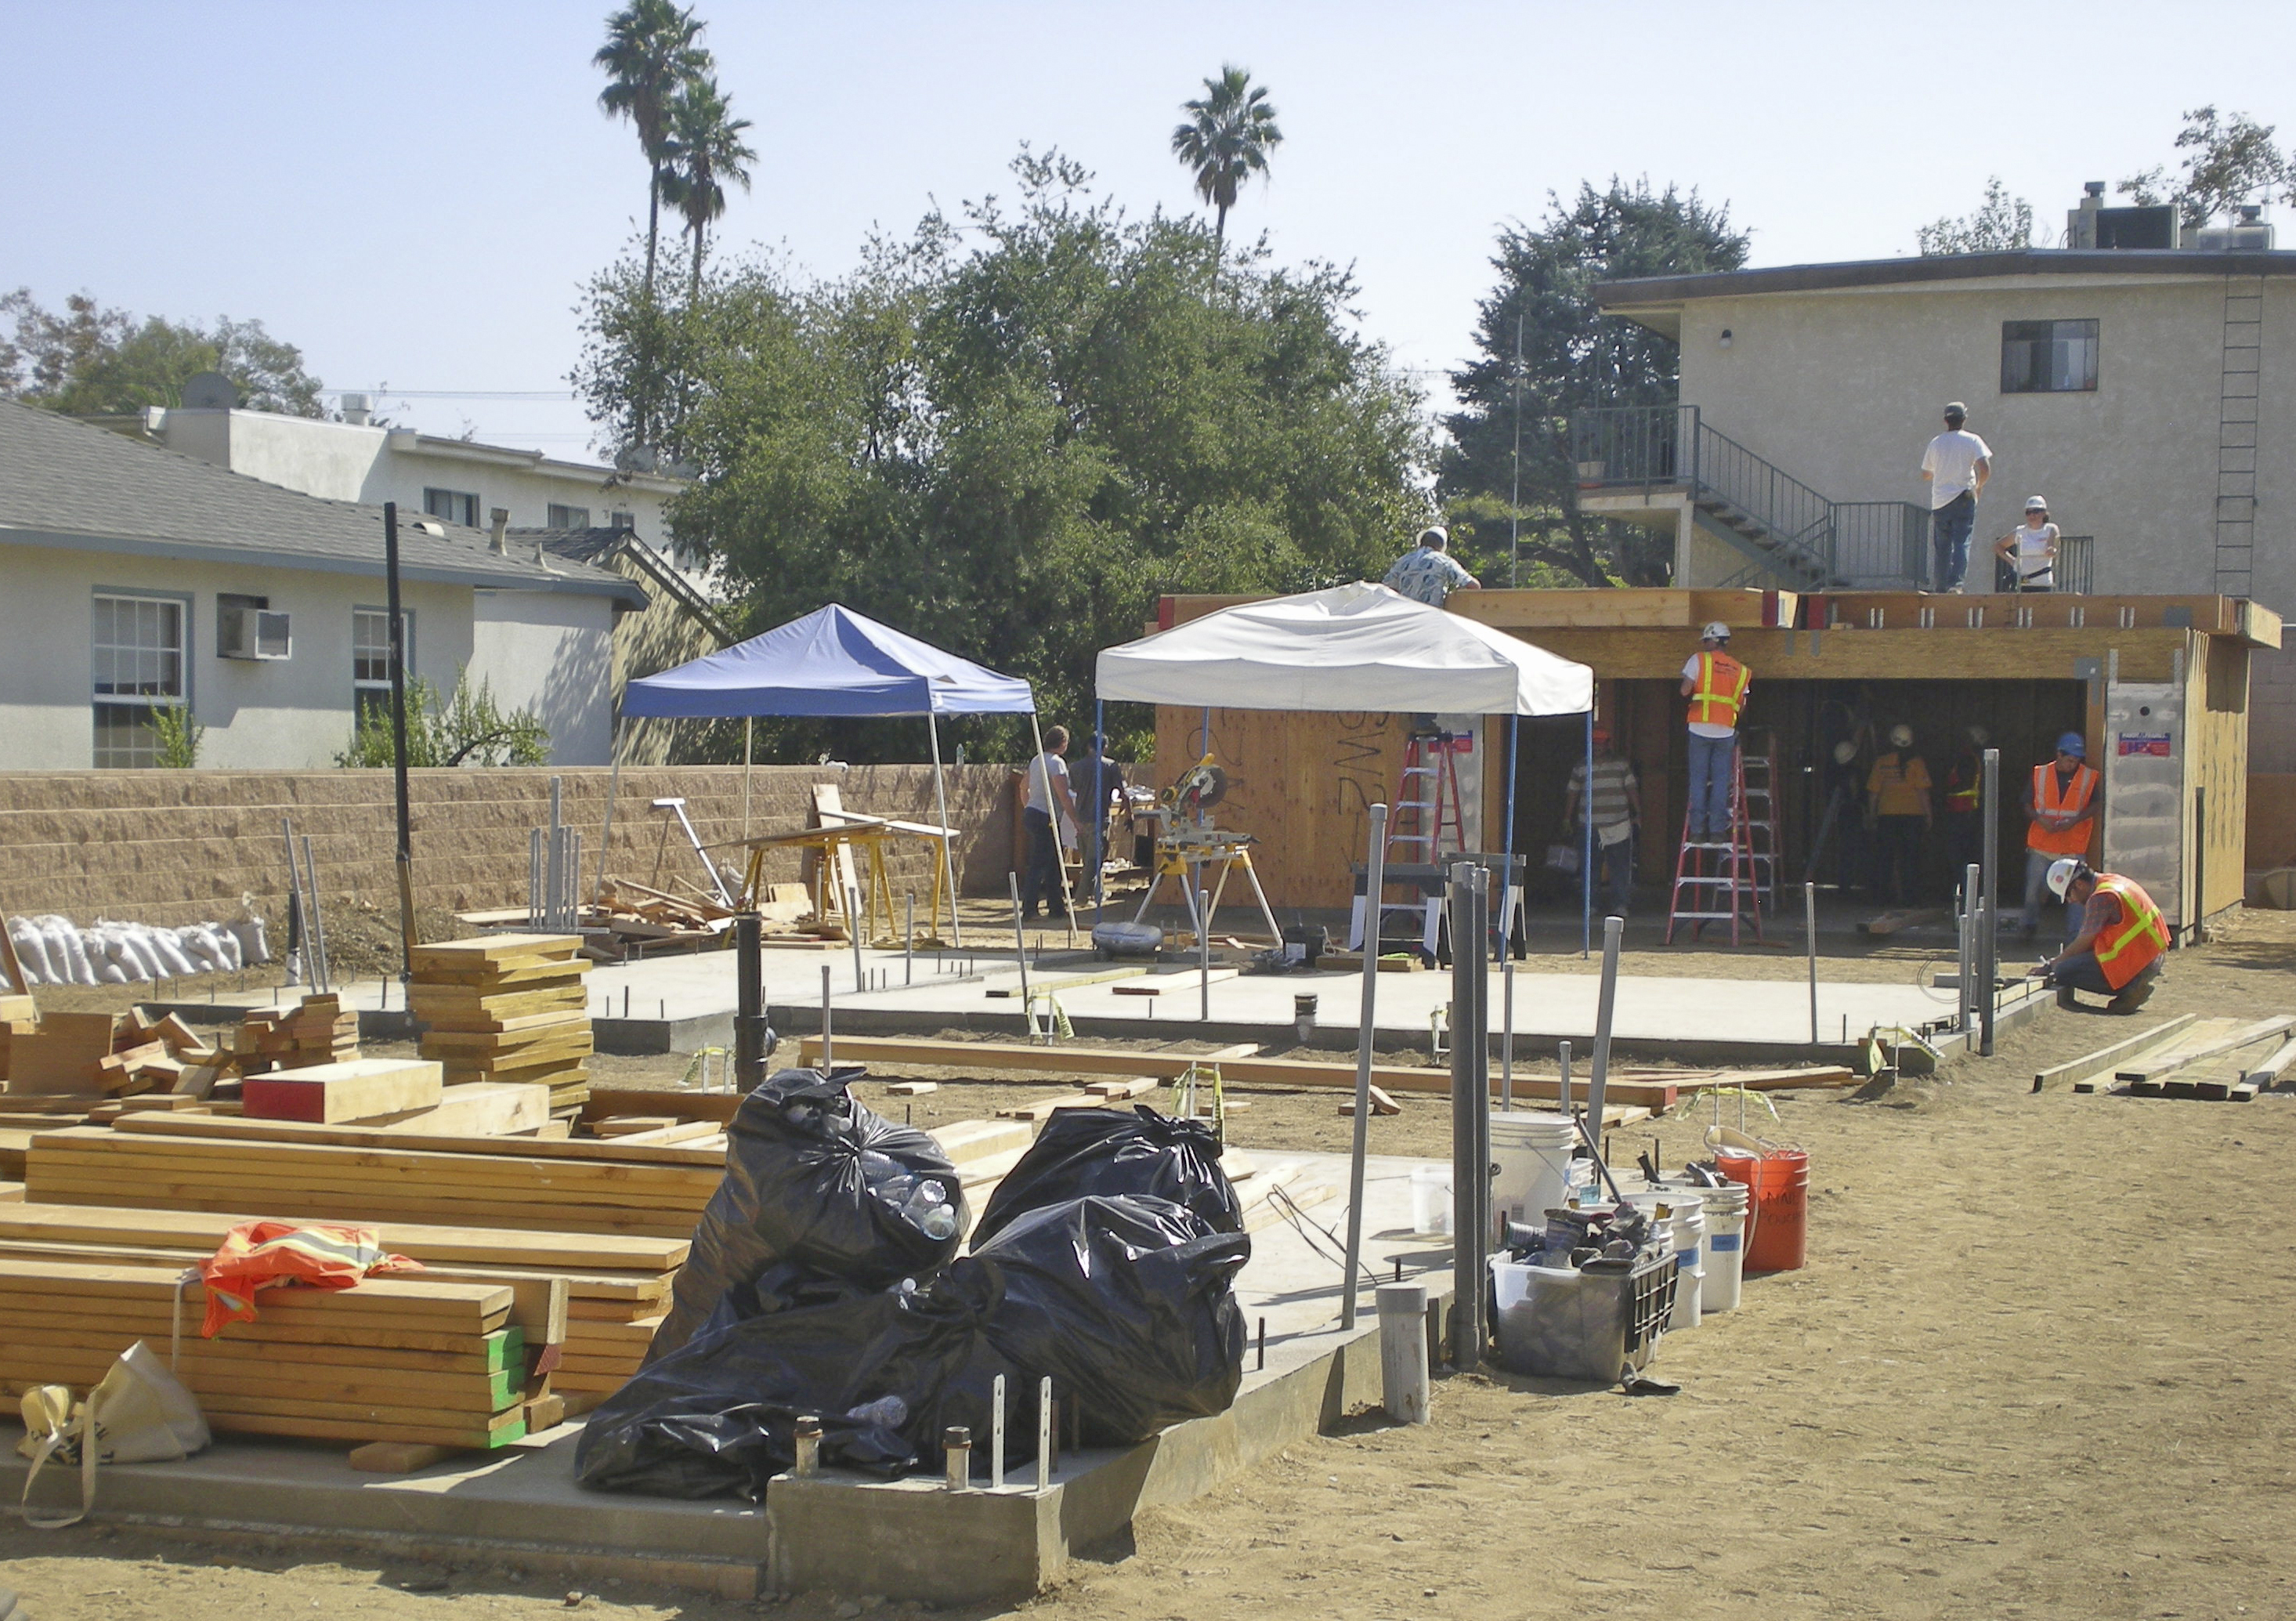 LAGC + Habitat For Humanity